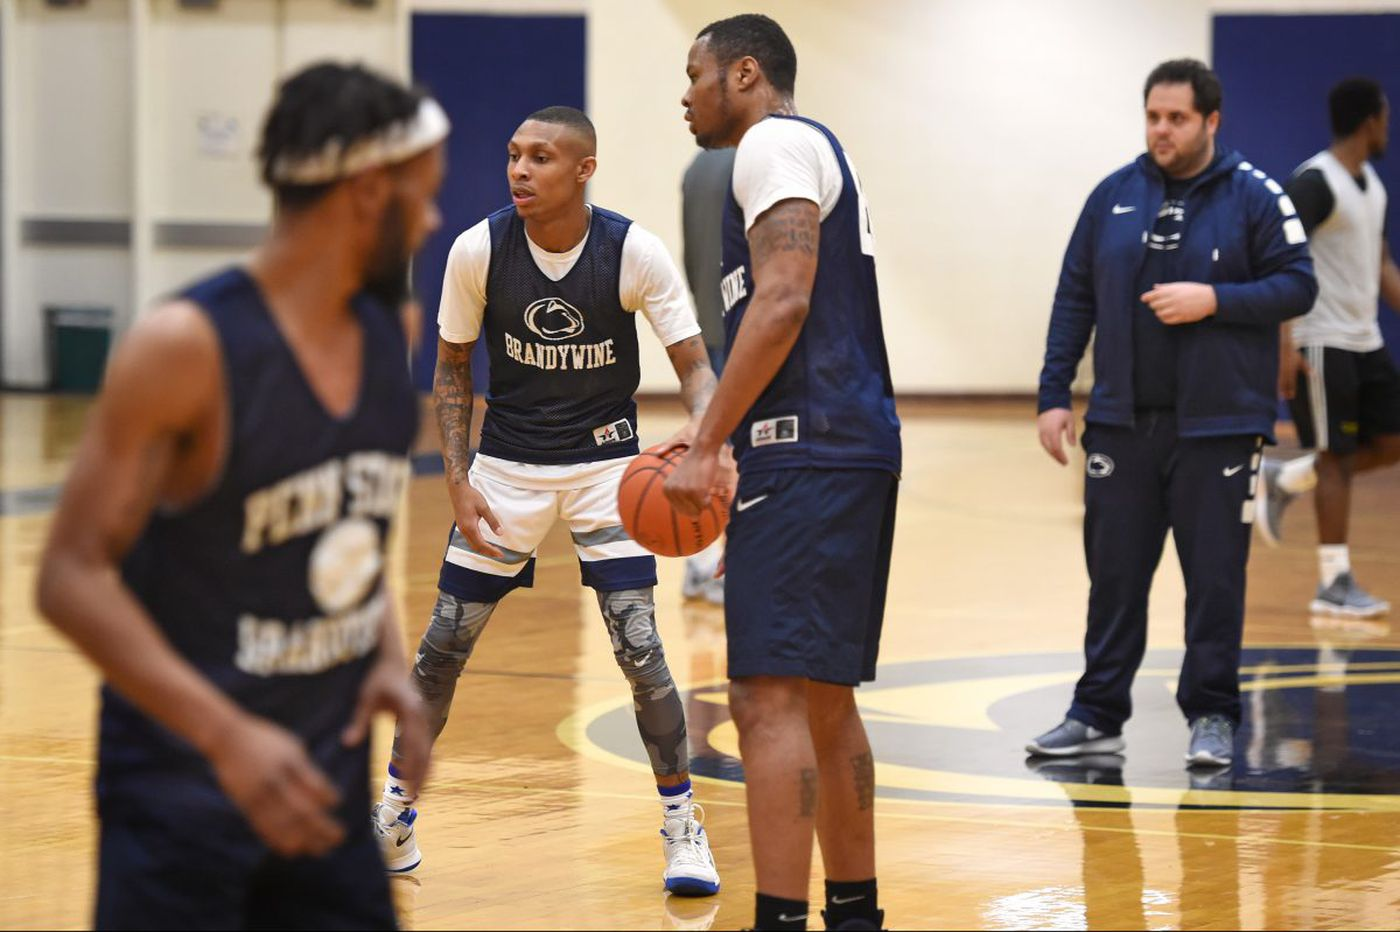 Penn State Brandywine charts its own hoops path | Mike Jensen